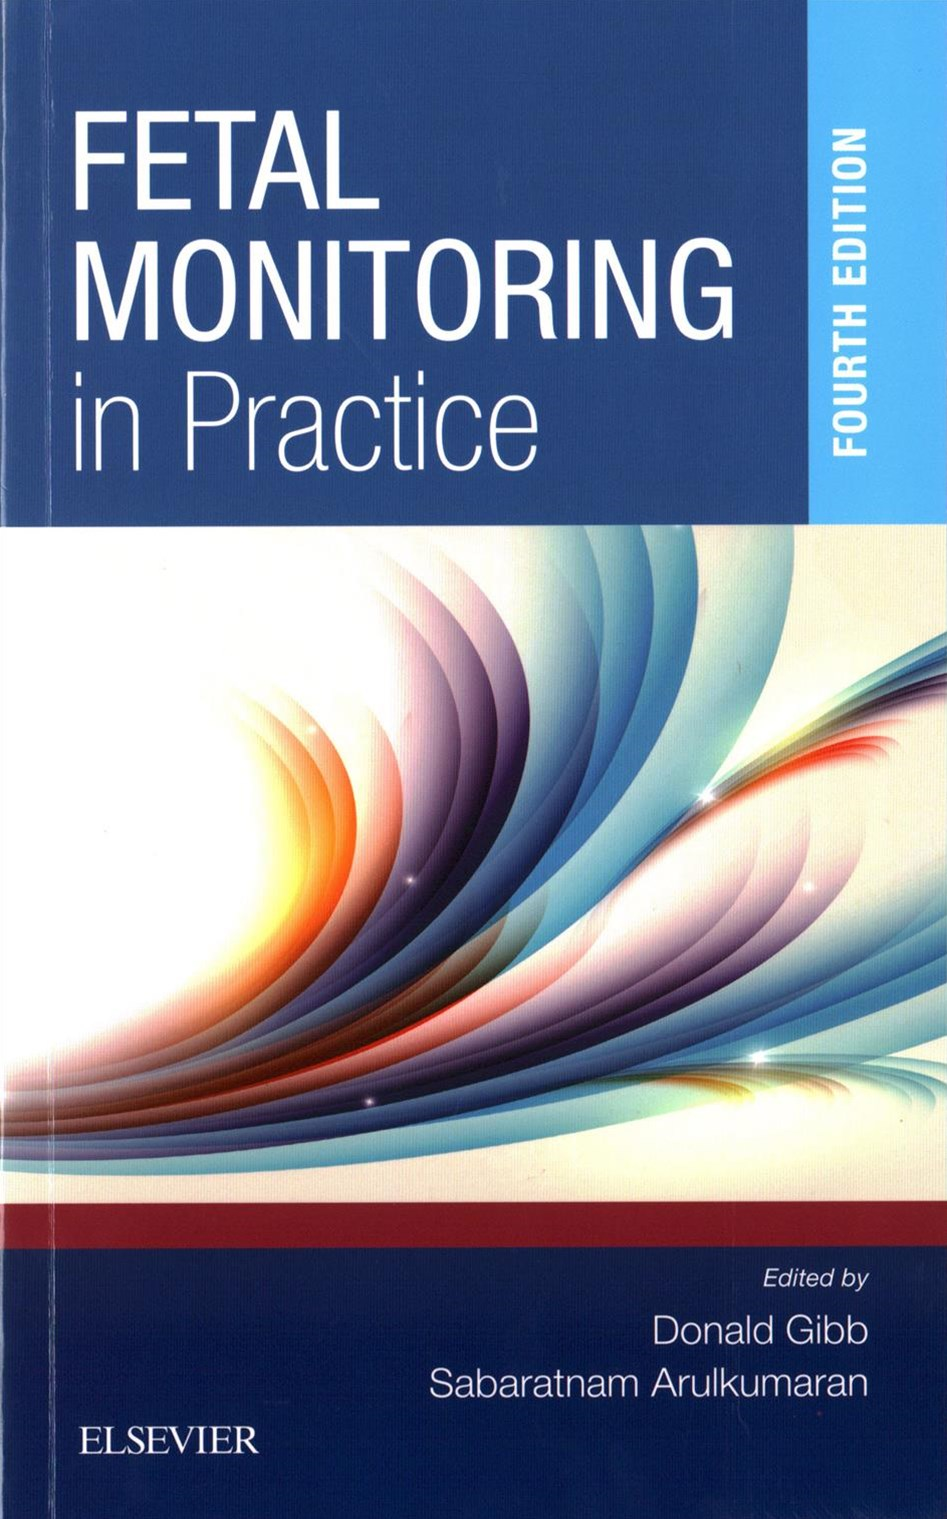 Fetal Monitoring in Practice